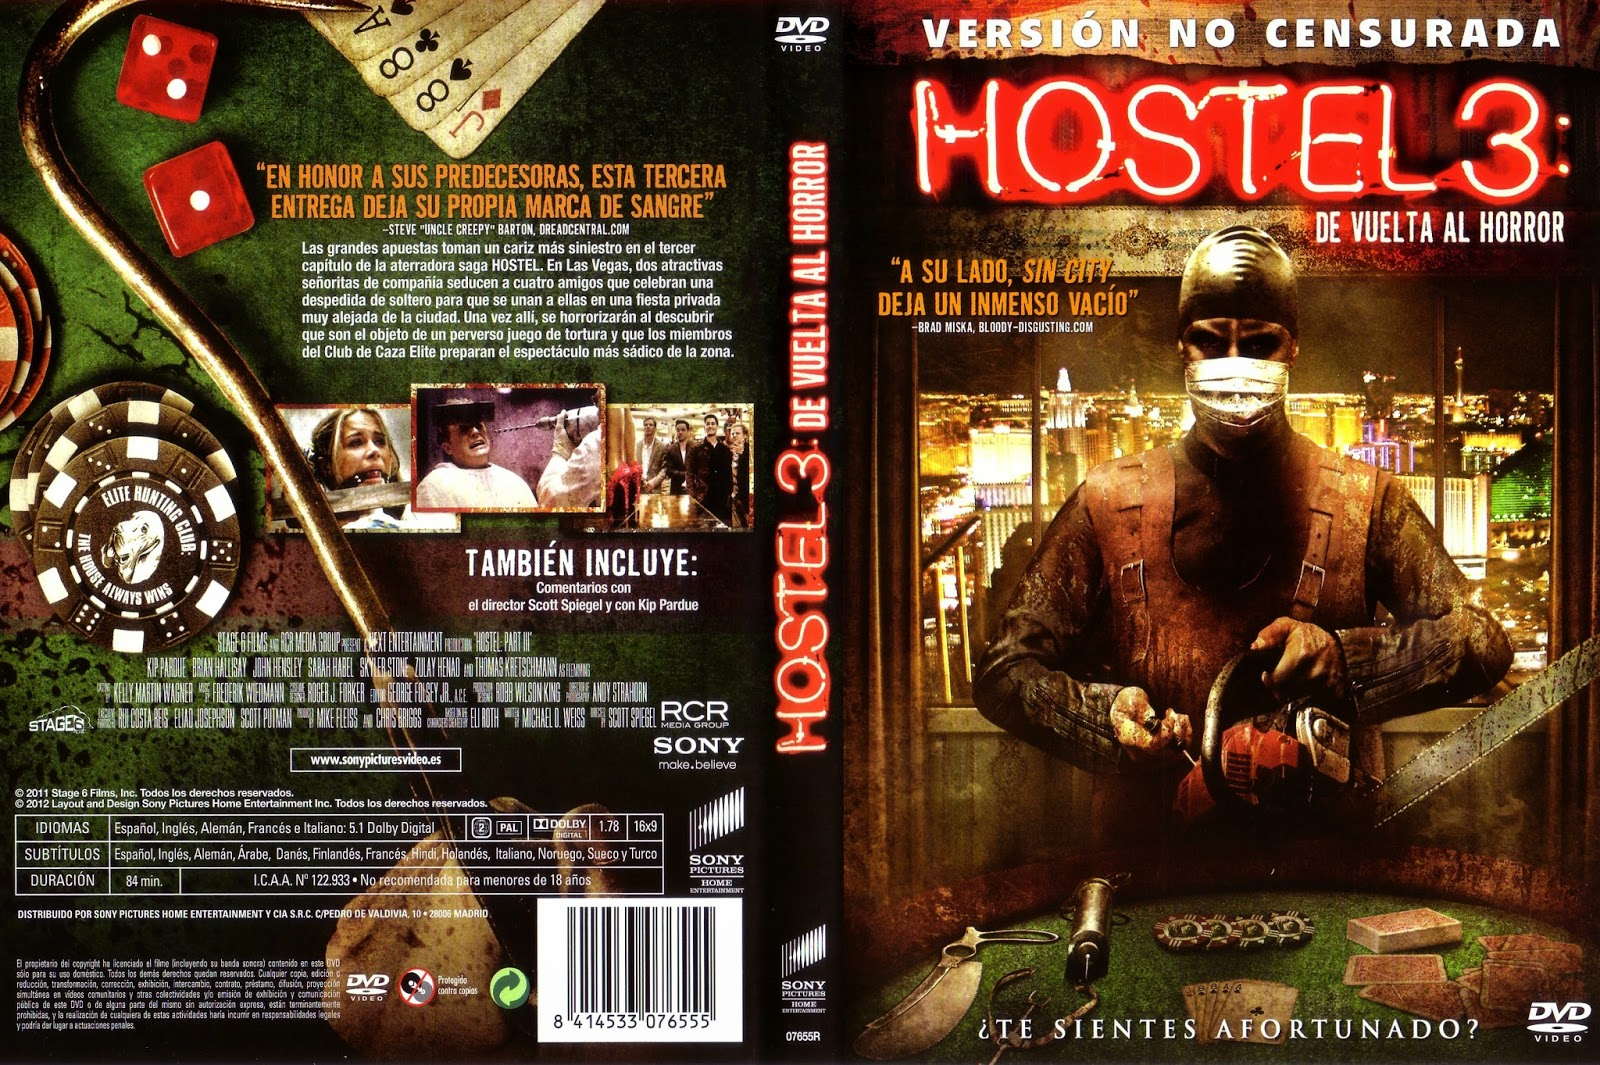 Hostel 3 De Vuelta Al Horror DVD